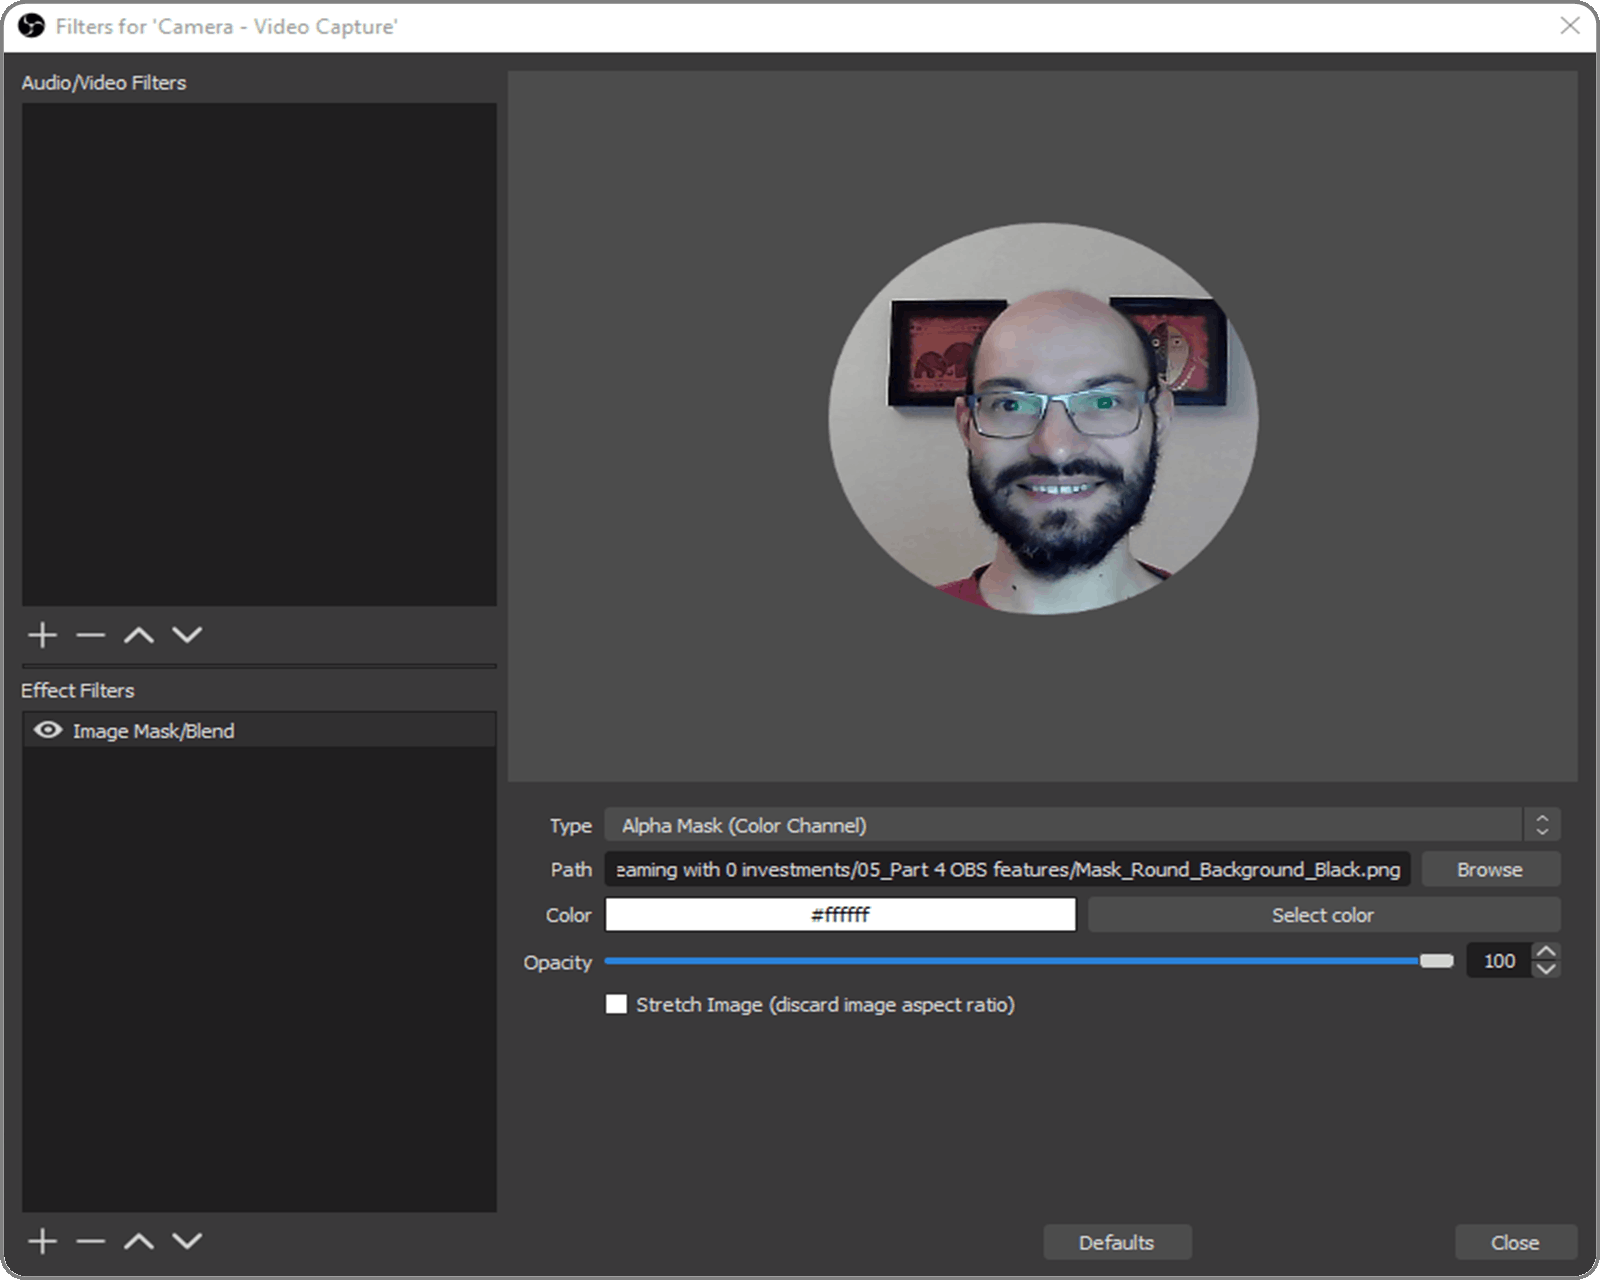 obs_08_filters_05.png